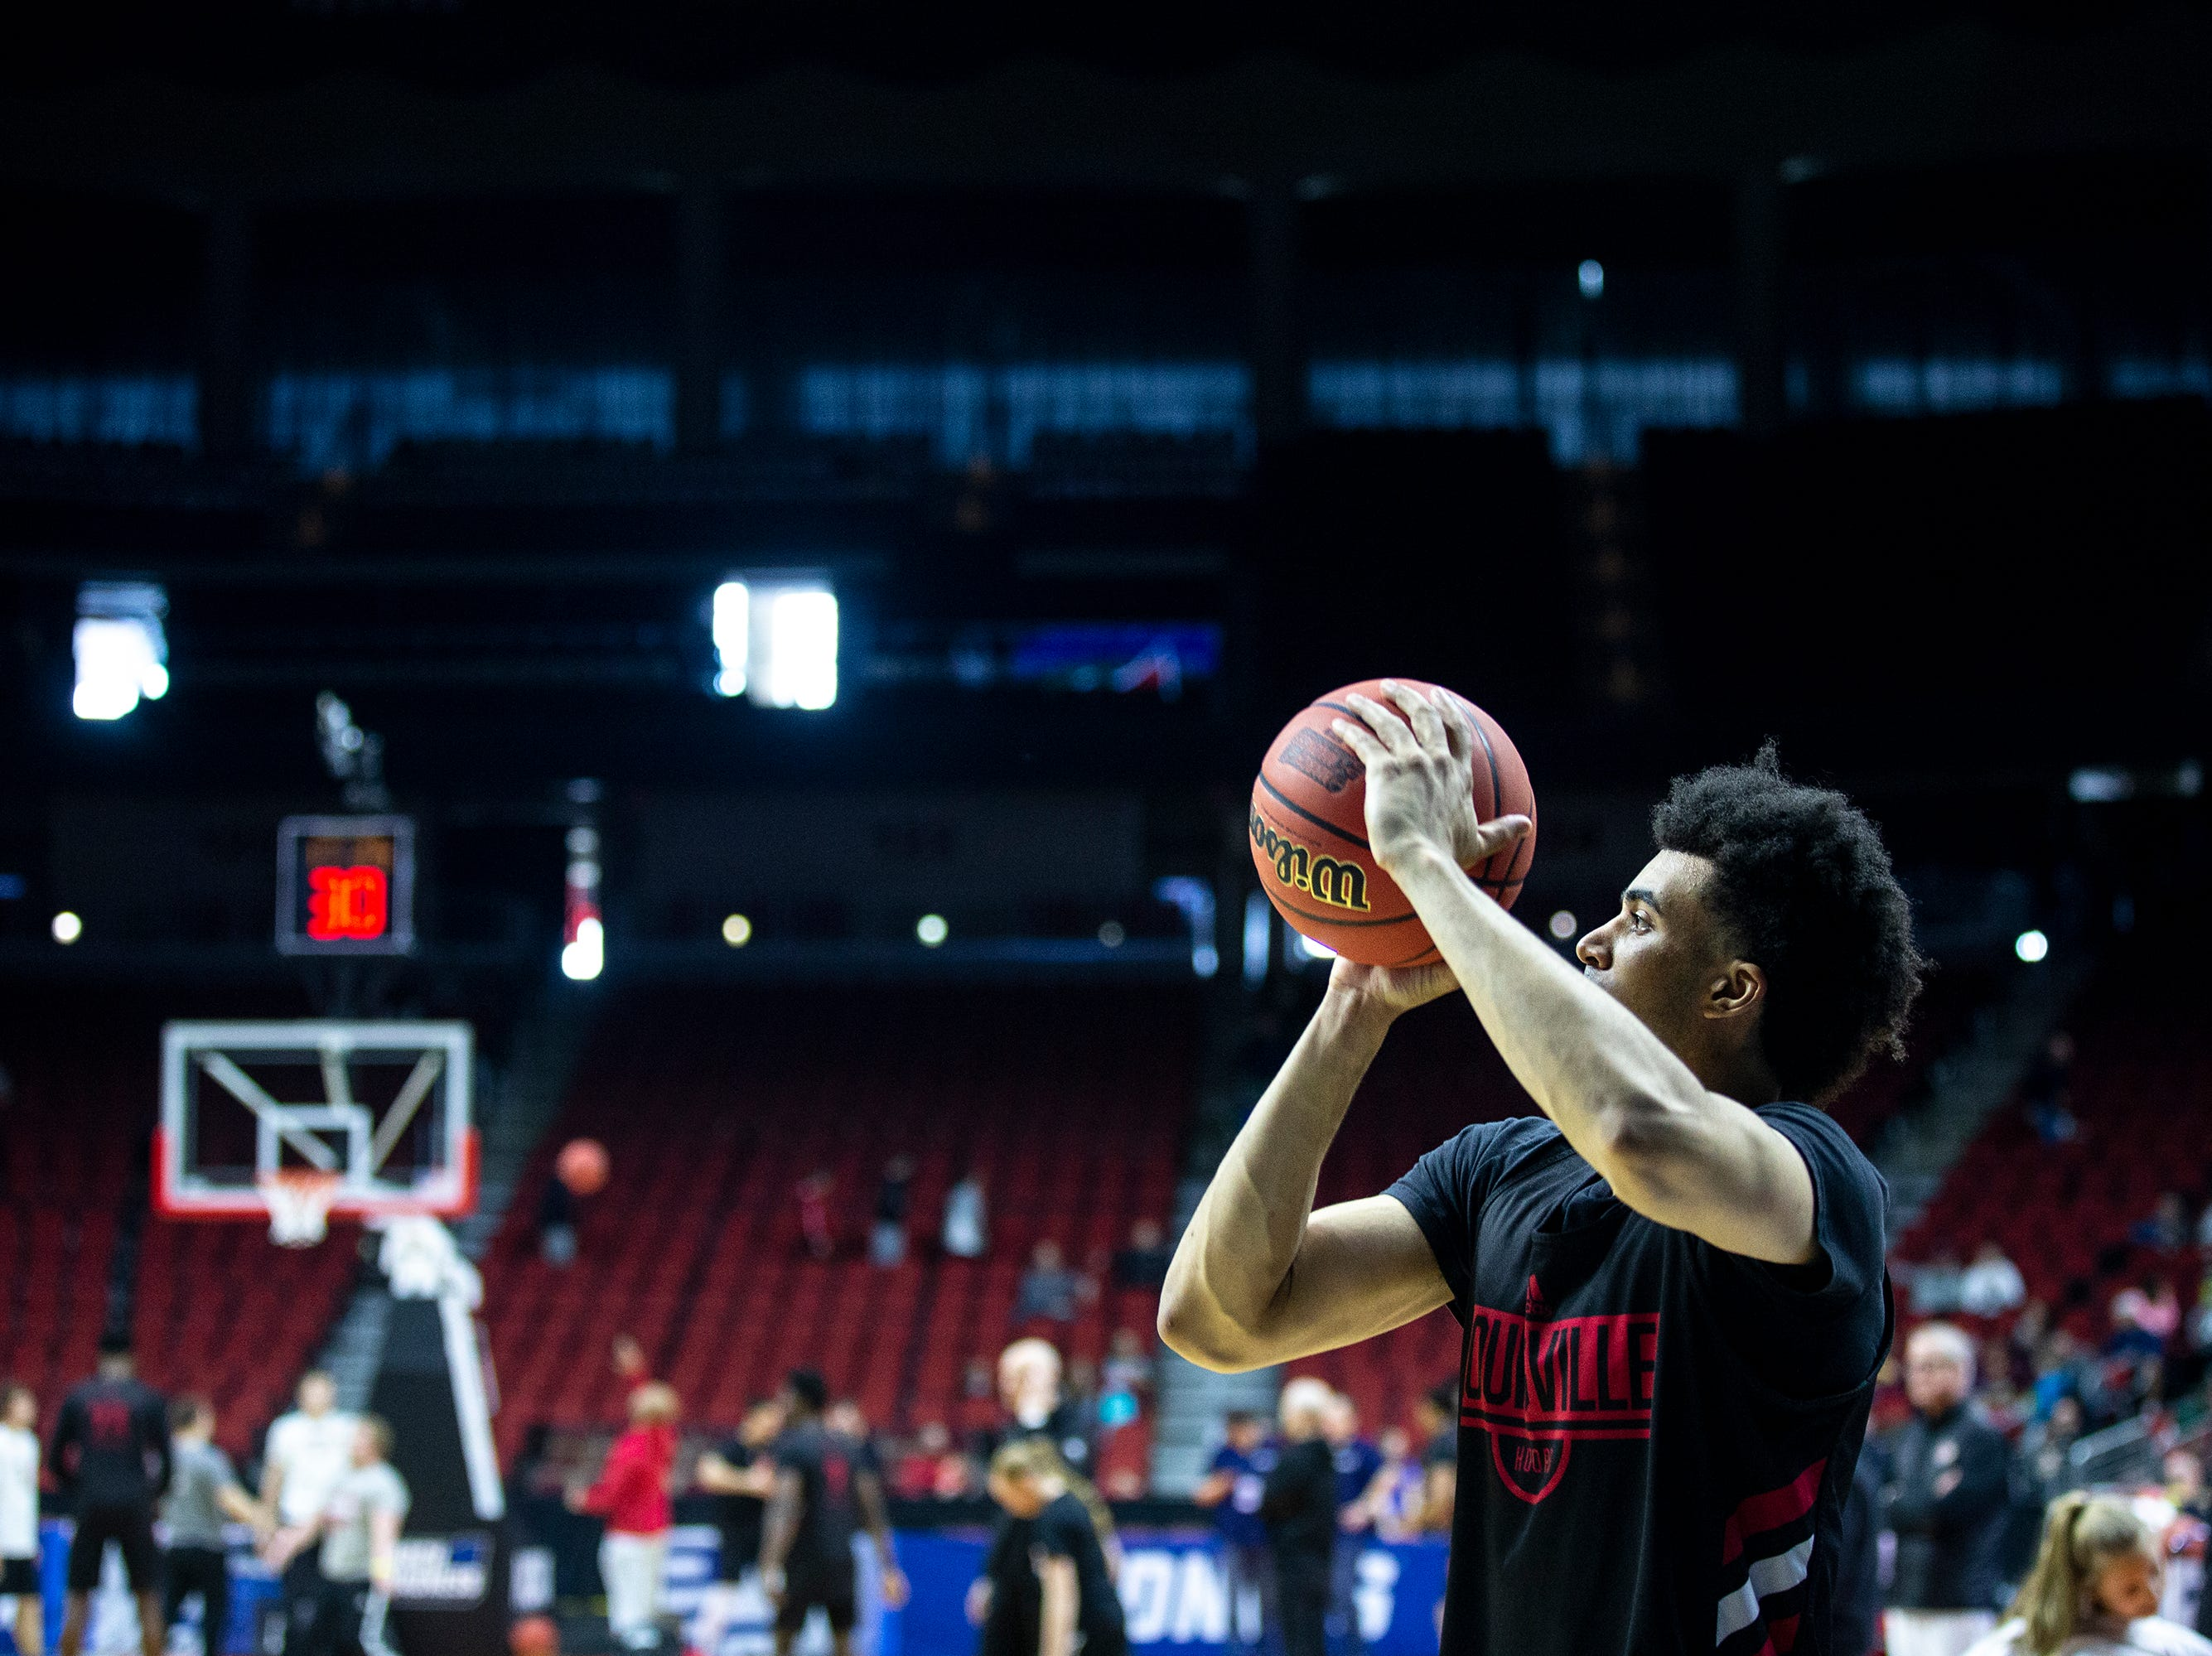 Louisville's Jordan Nwora shoots the ball during Louisville's open practice before the first round of the NCAA Men's Basketball Tournament on Wednesday, March 20, 2019, at Wells Fargo Arena in Des Moines, Iowa.